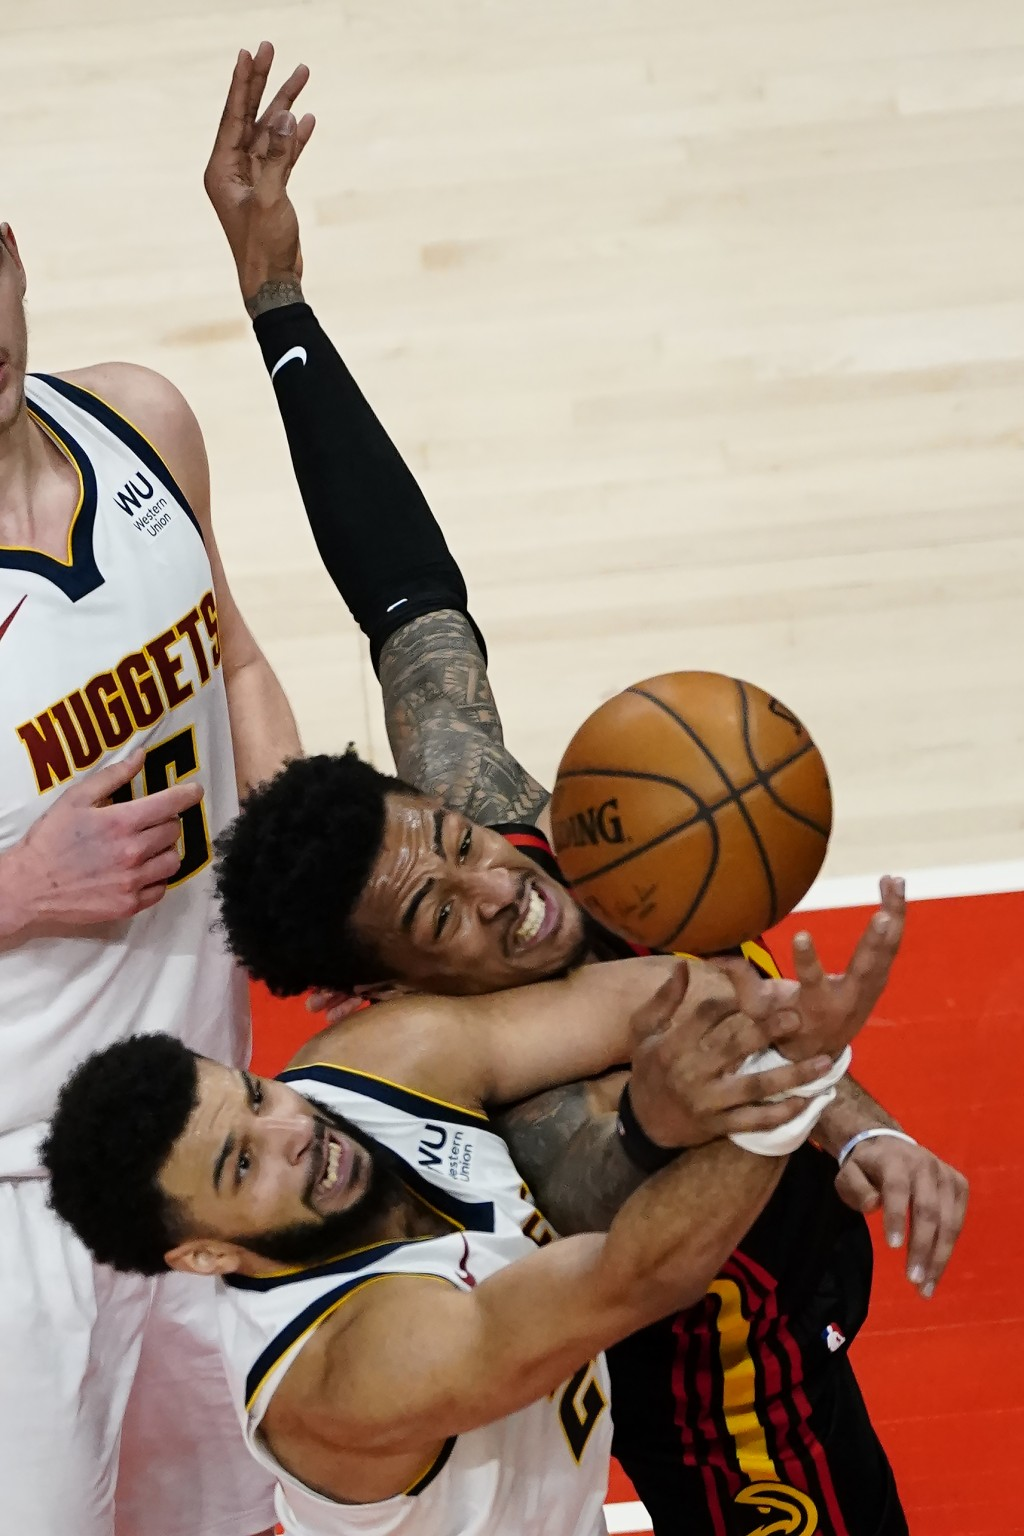 Denver Nuggets guard Jamal Murray, bottom, and Atlanta Hawks forward John Collins vie for a rebound during the second half of an NBA basketball game S...